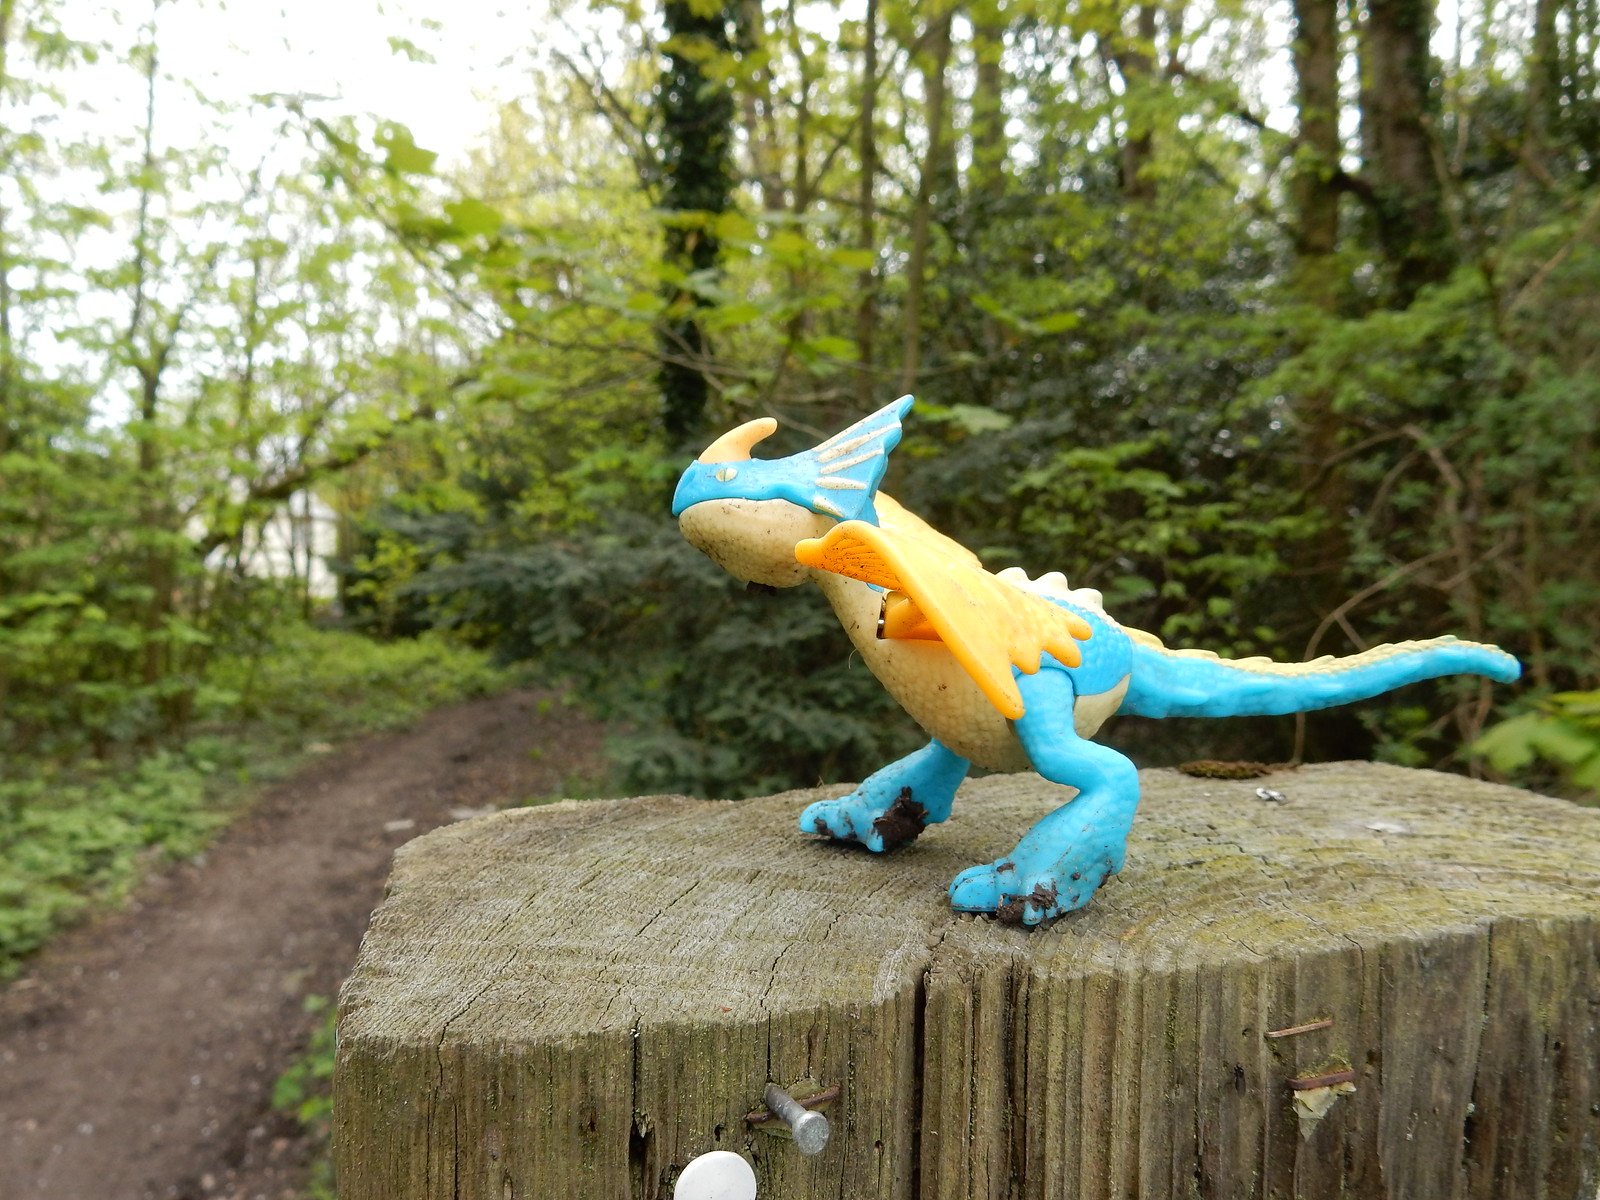 Unidentified reptile Whyteleafe to Woldingham